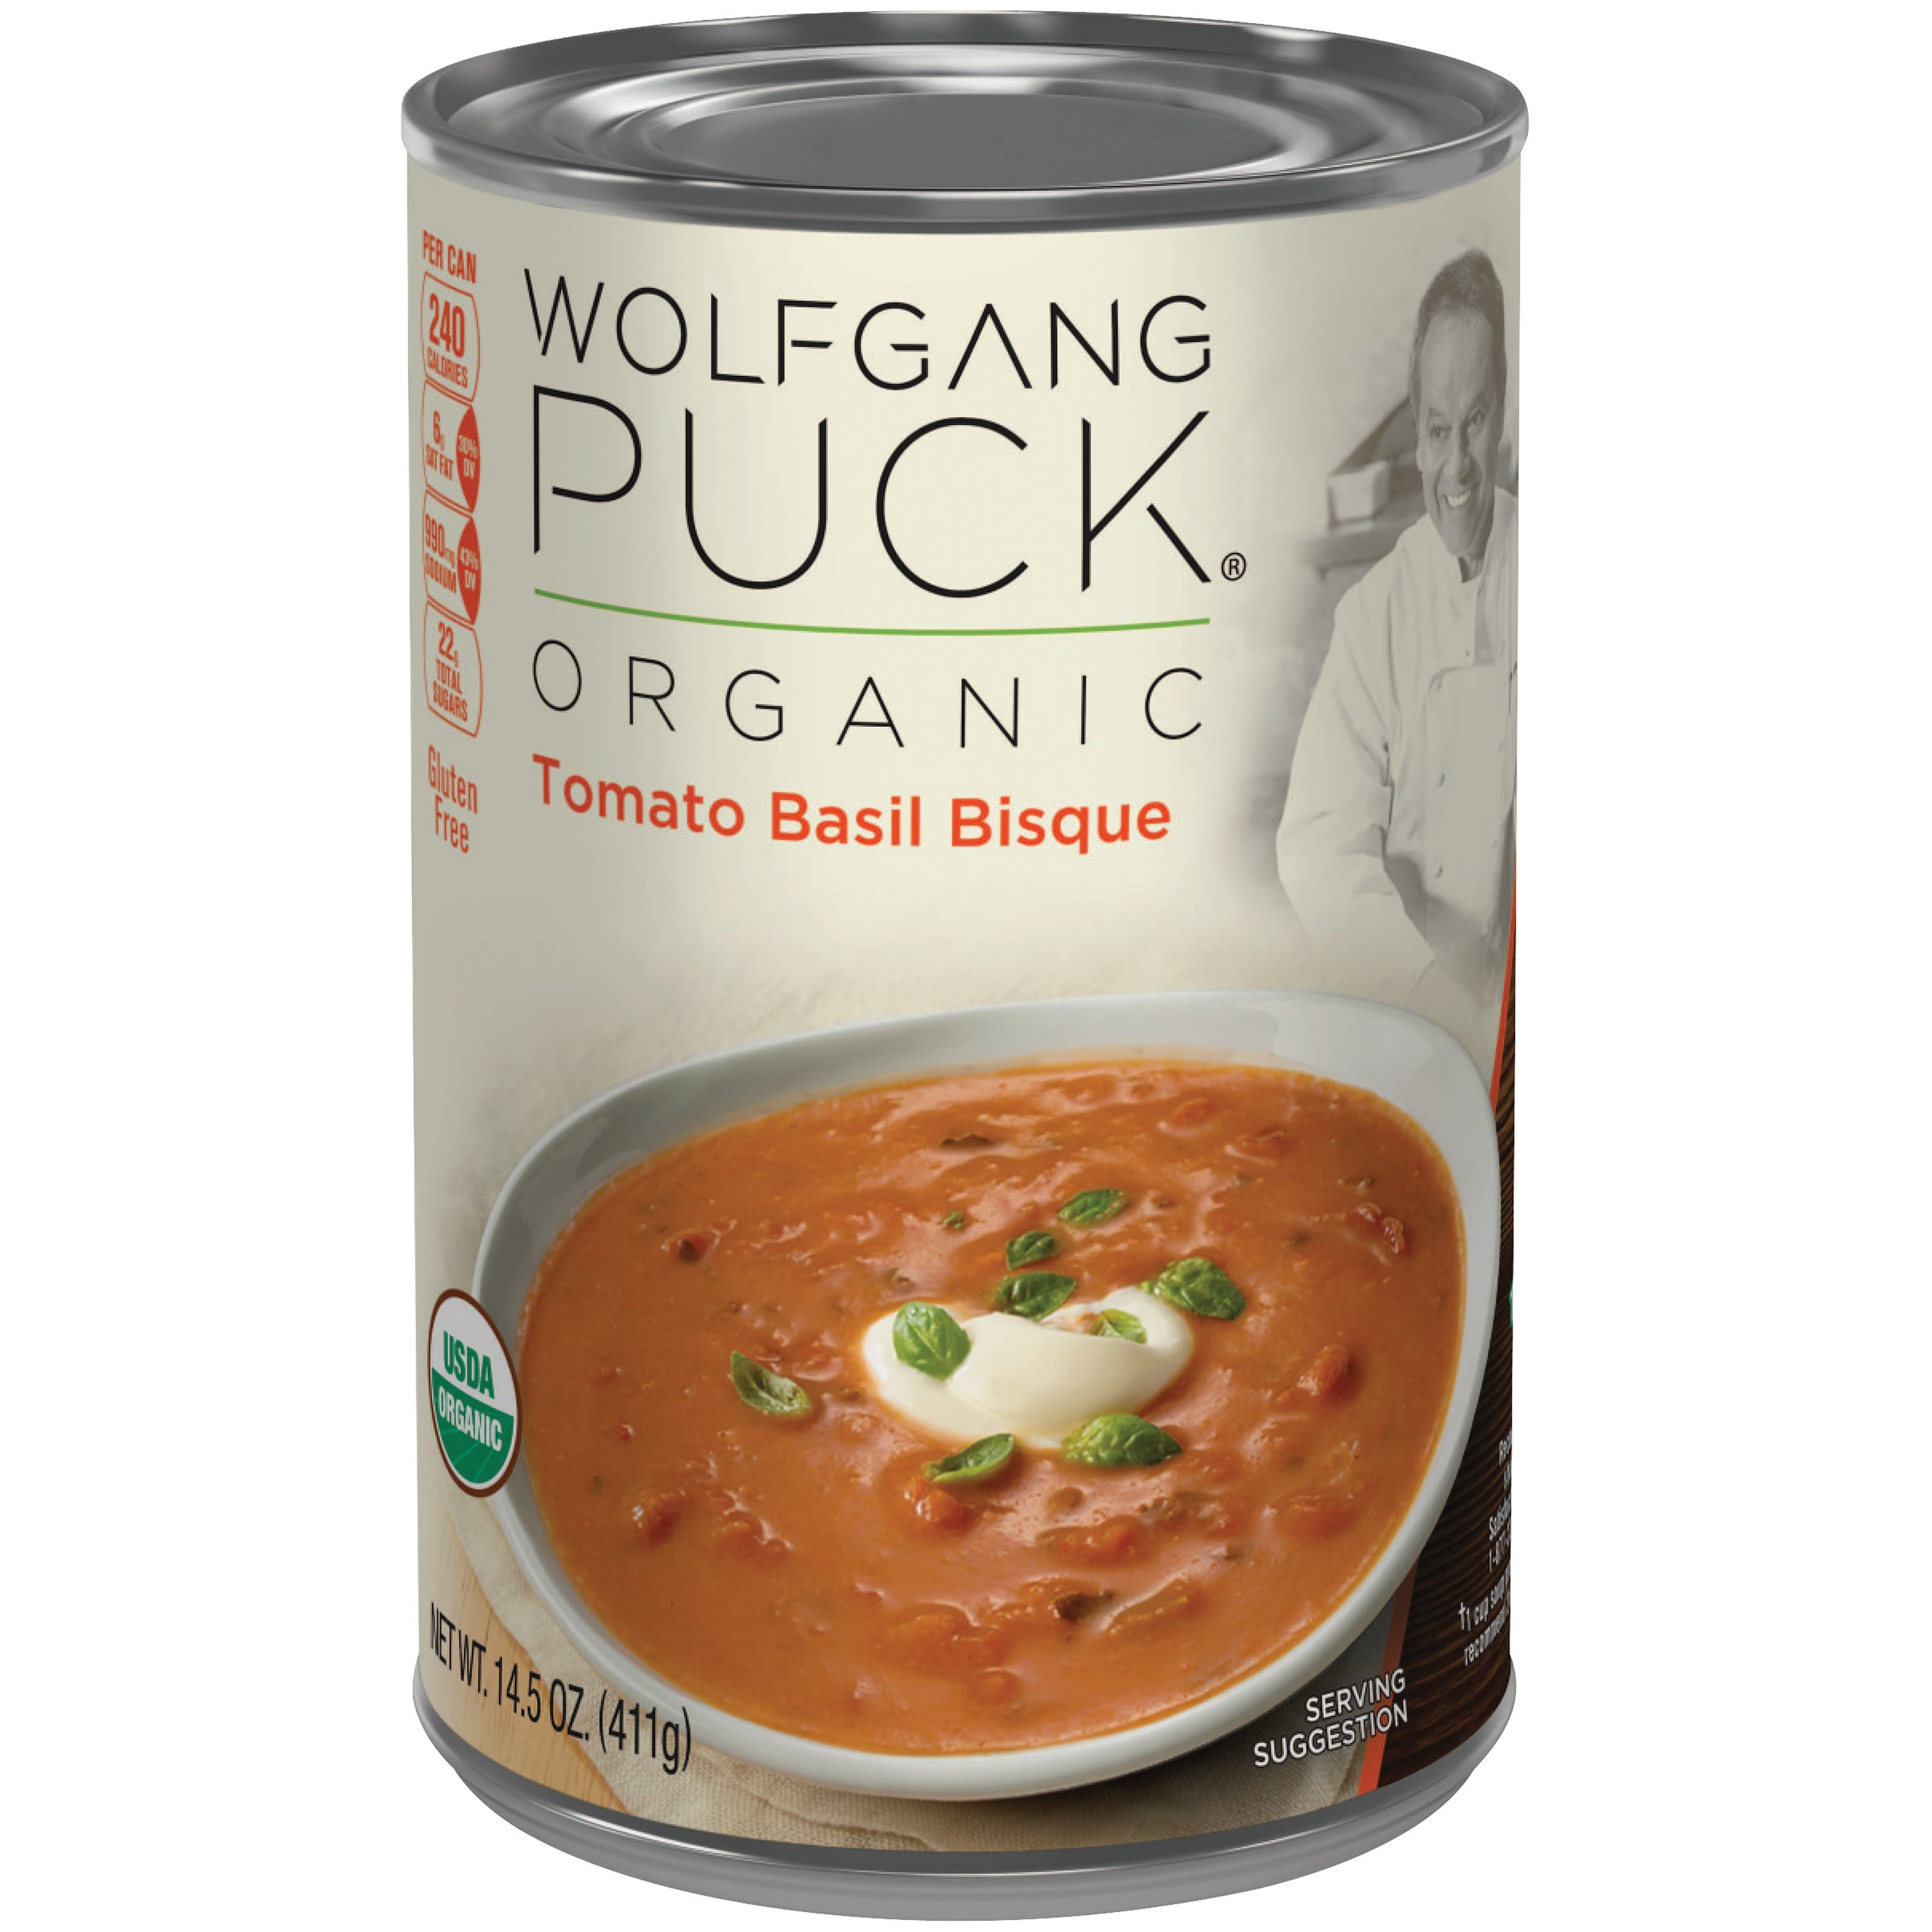 Wolfgang Puck Organic Soup, Tomato Basil Bisque, 14.5 Ounce